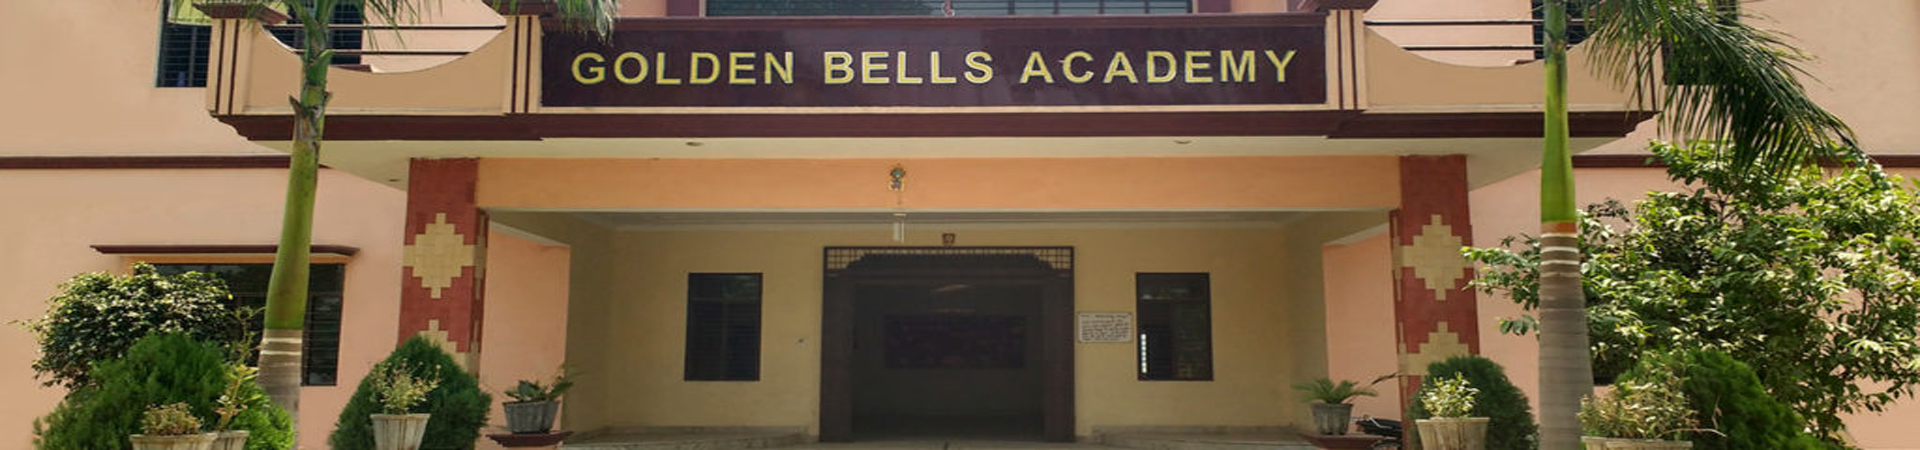 Golden Bells Academy